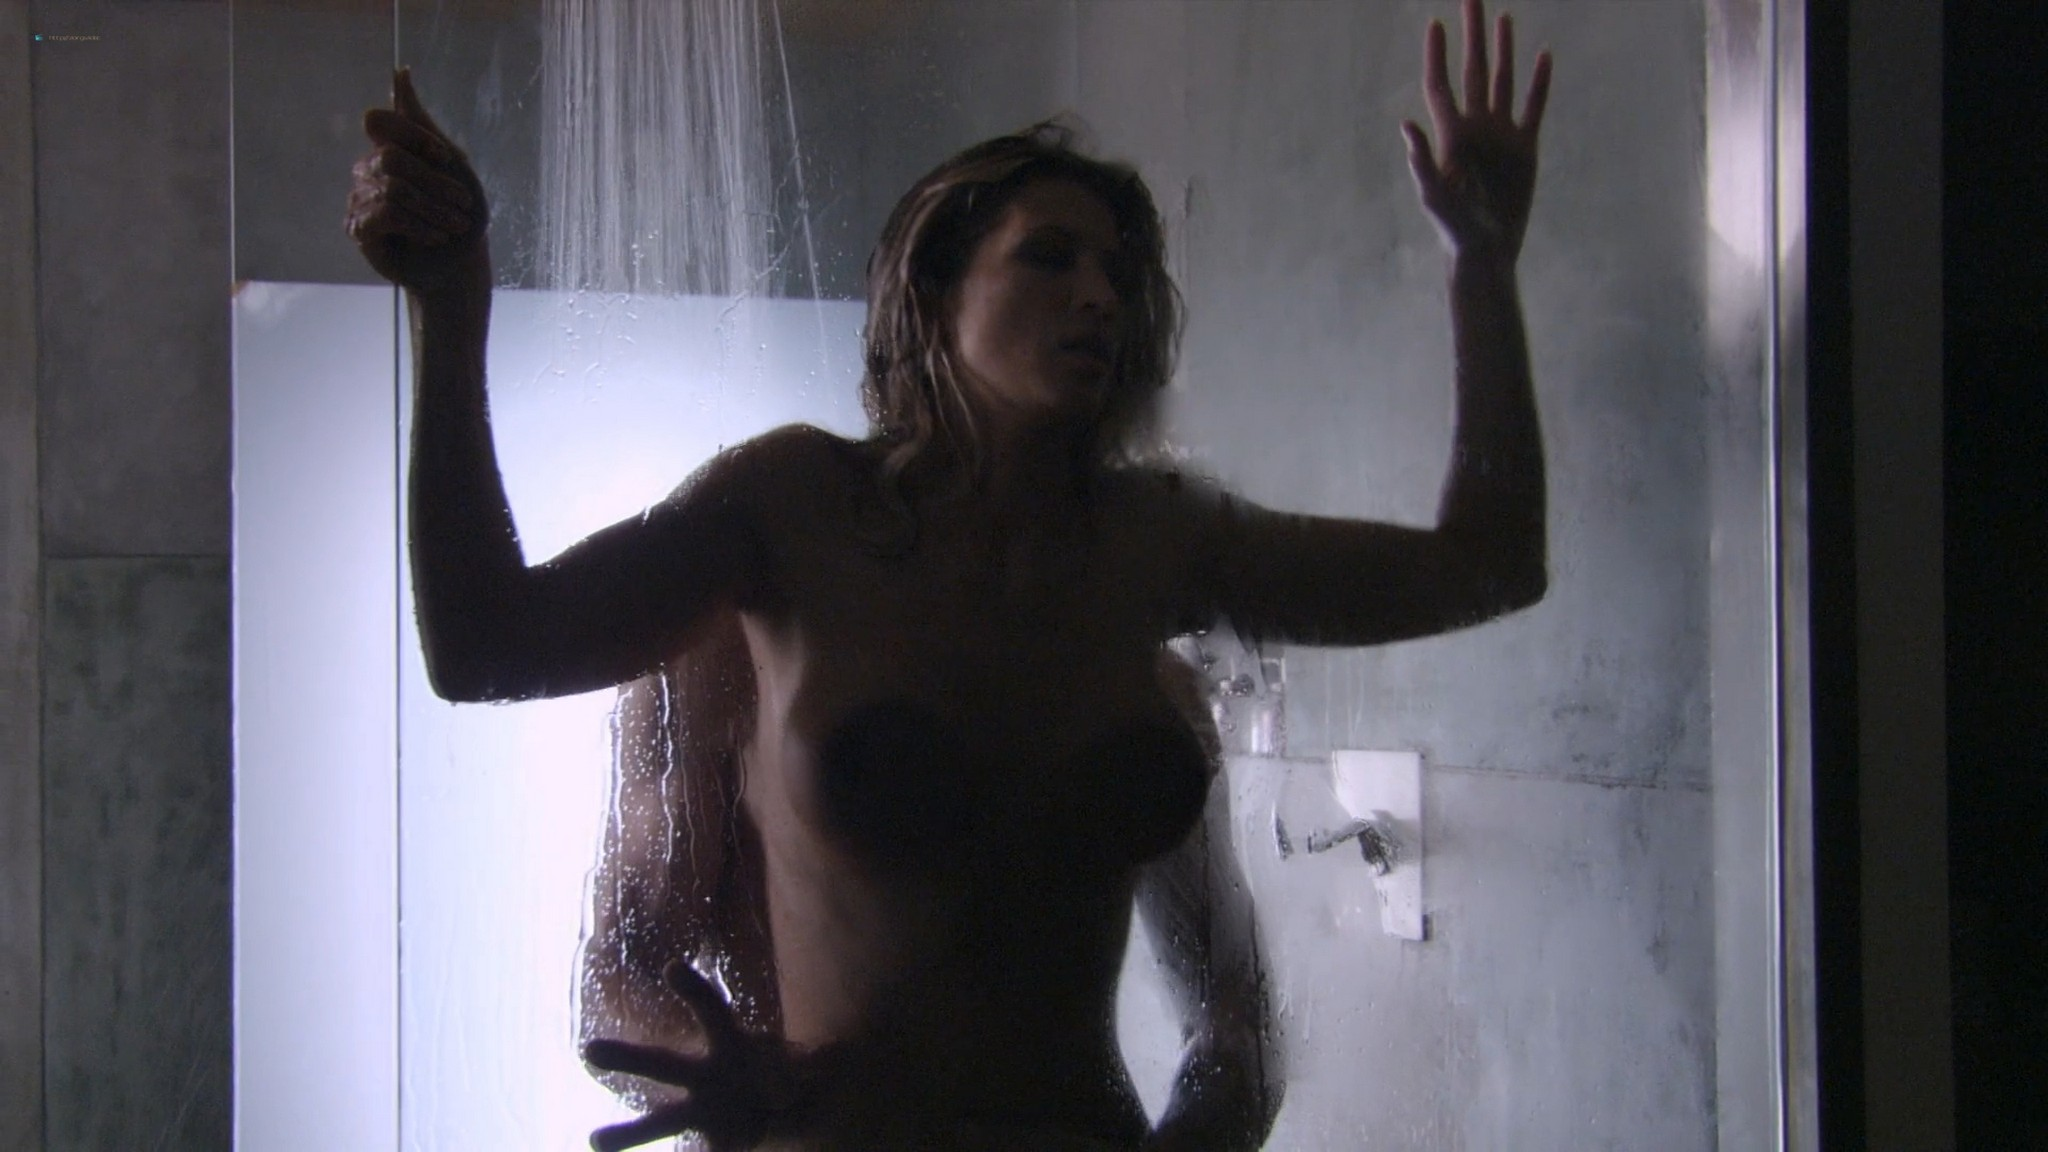 Amber Smith nude hot sex Noelle DuBois and others nude sex Lingerie 2009 s2e12 1080p Web 13